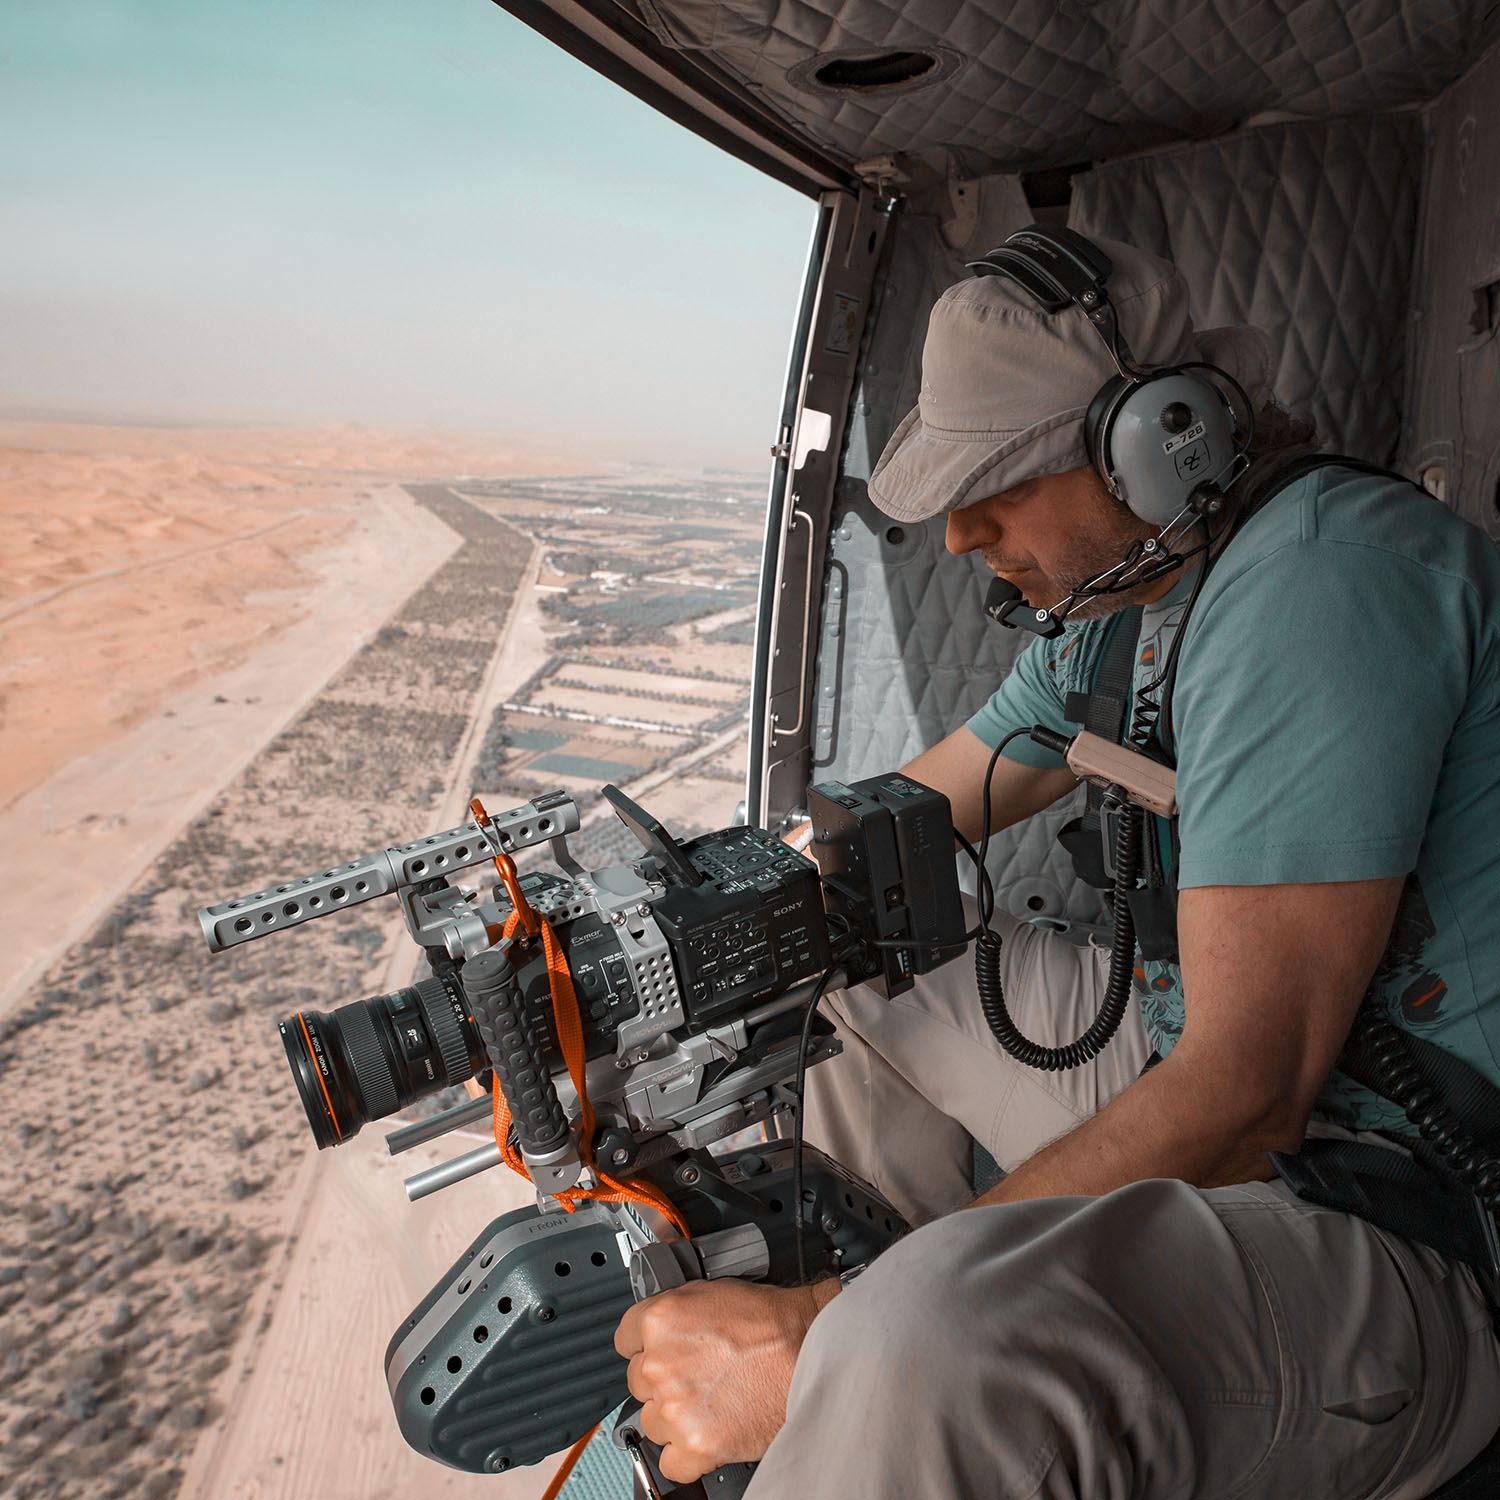 Heli video shoot with Sony FS700 and Tyler MiniGyro. Check out the portfolio  here